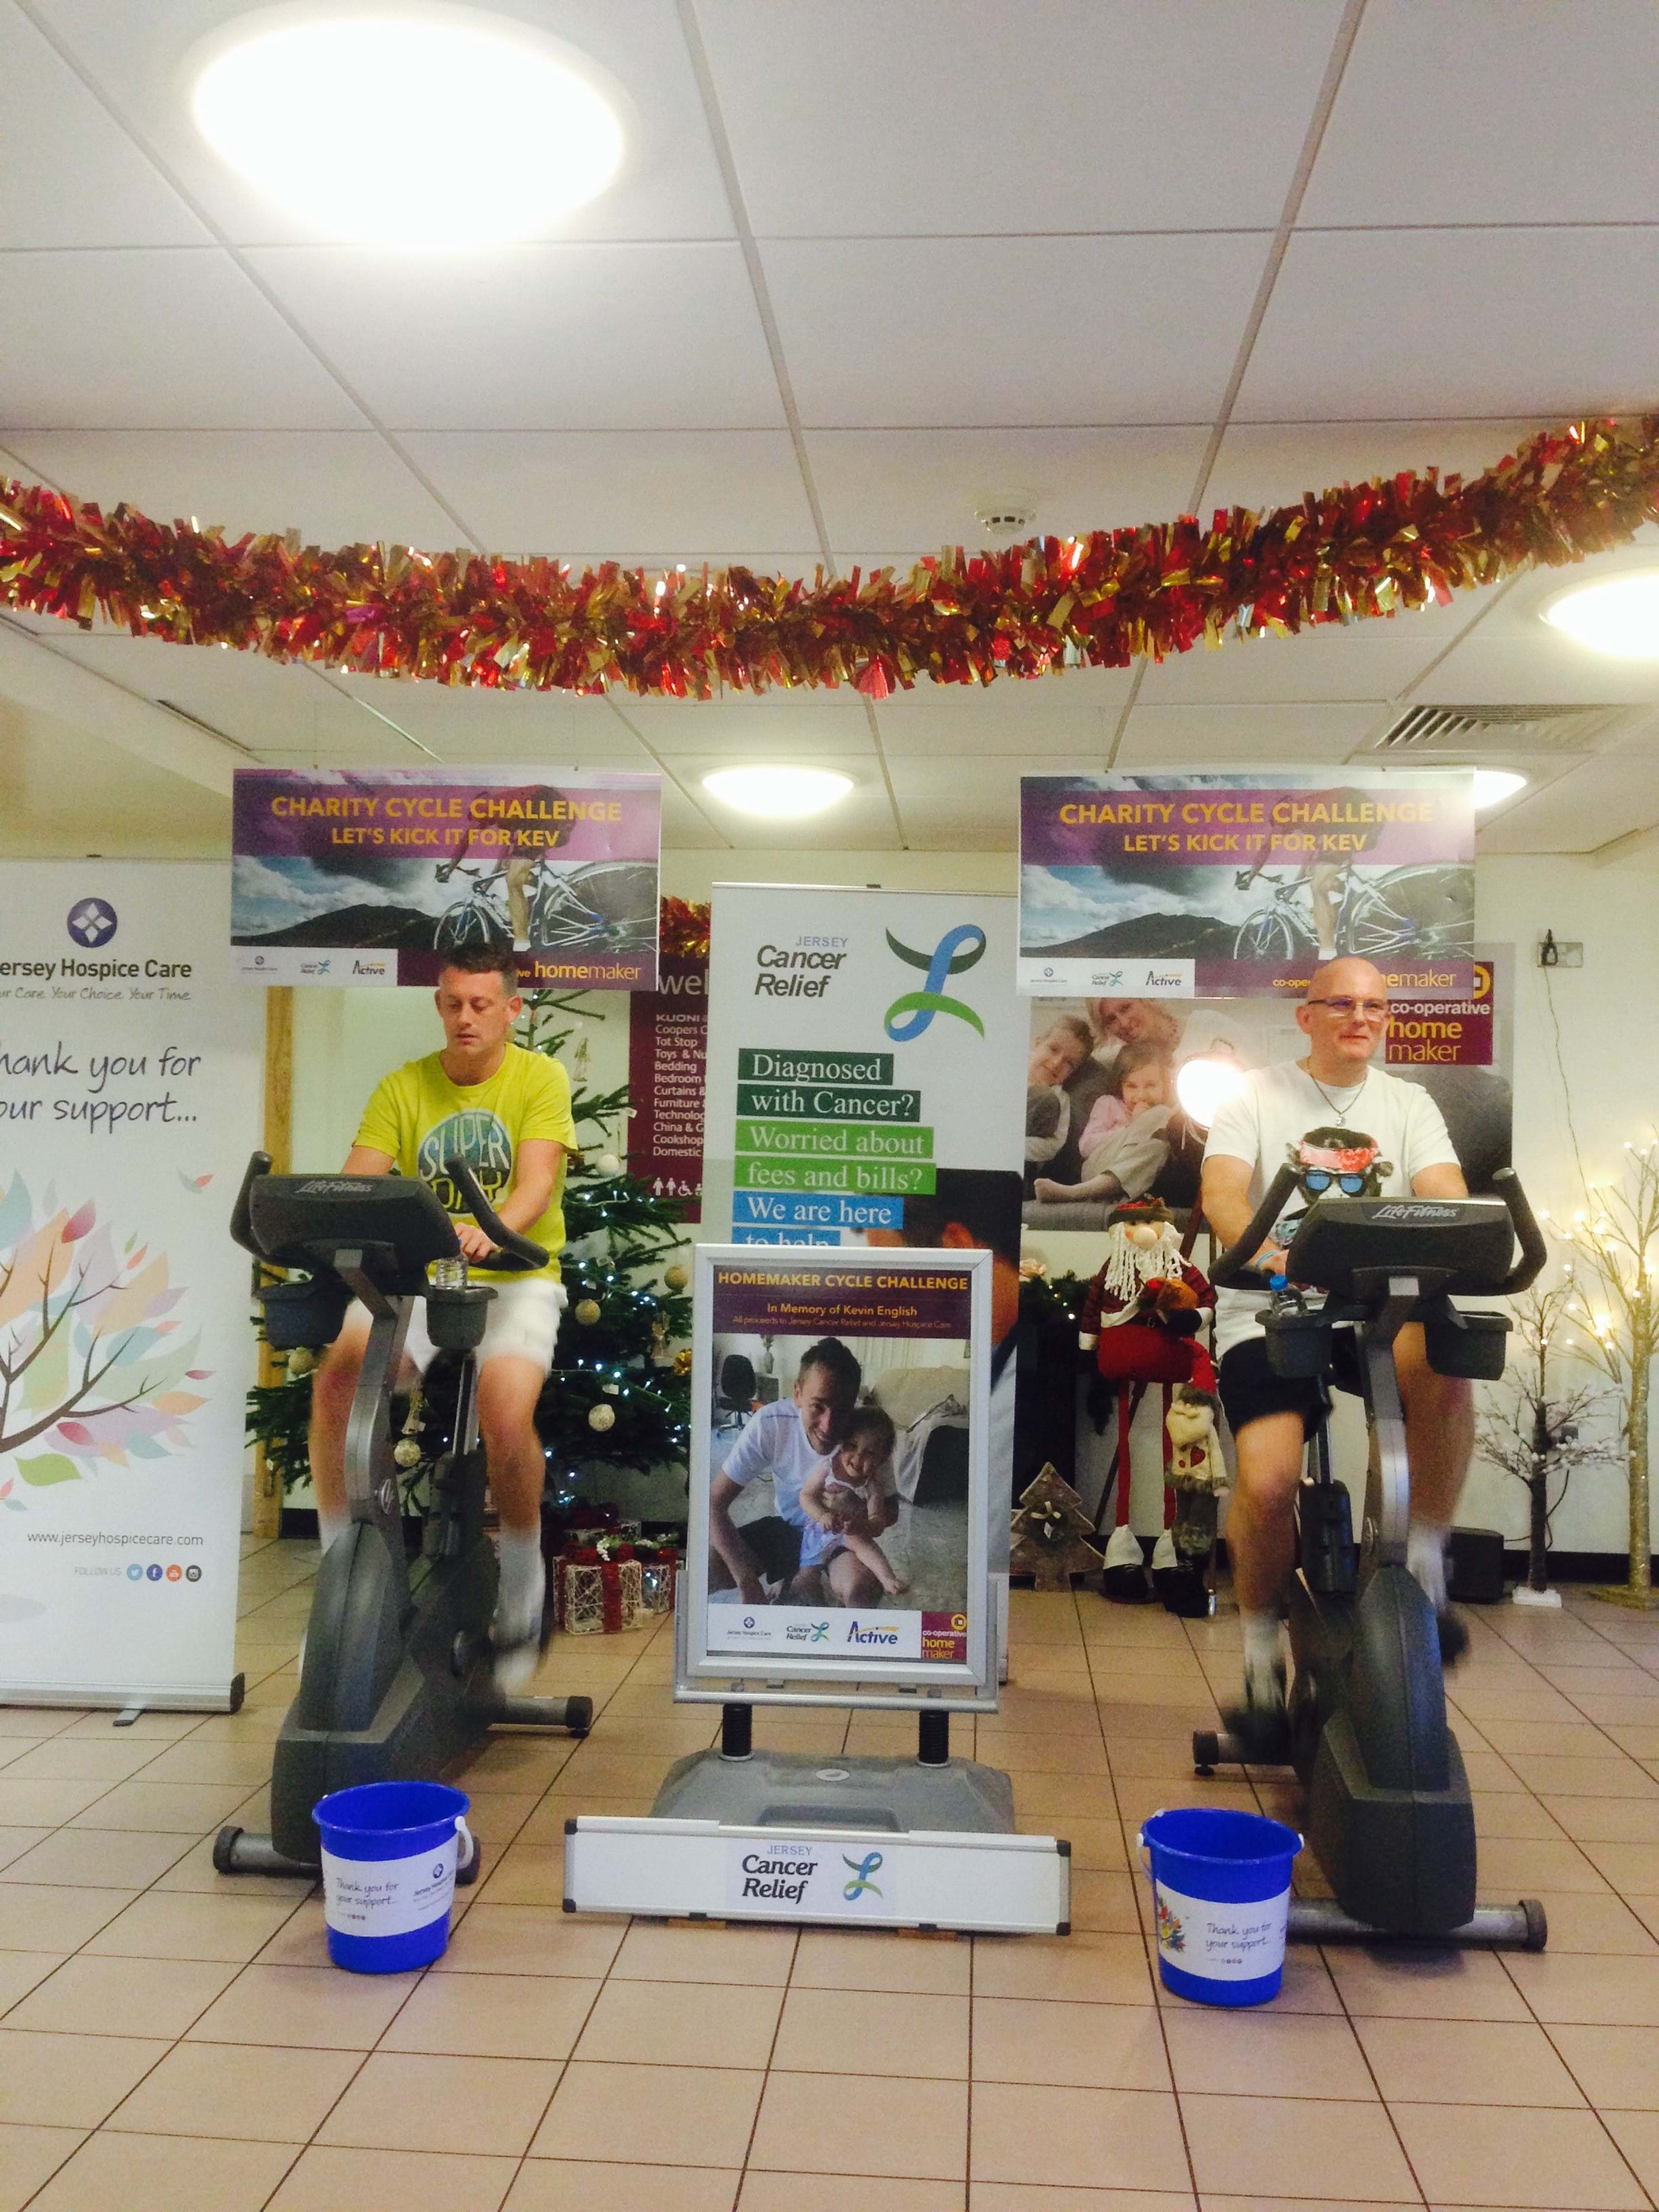 Cyclists raise nearly £3,000 for charity in memory of colleague